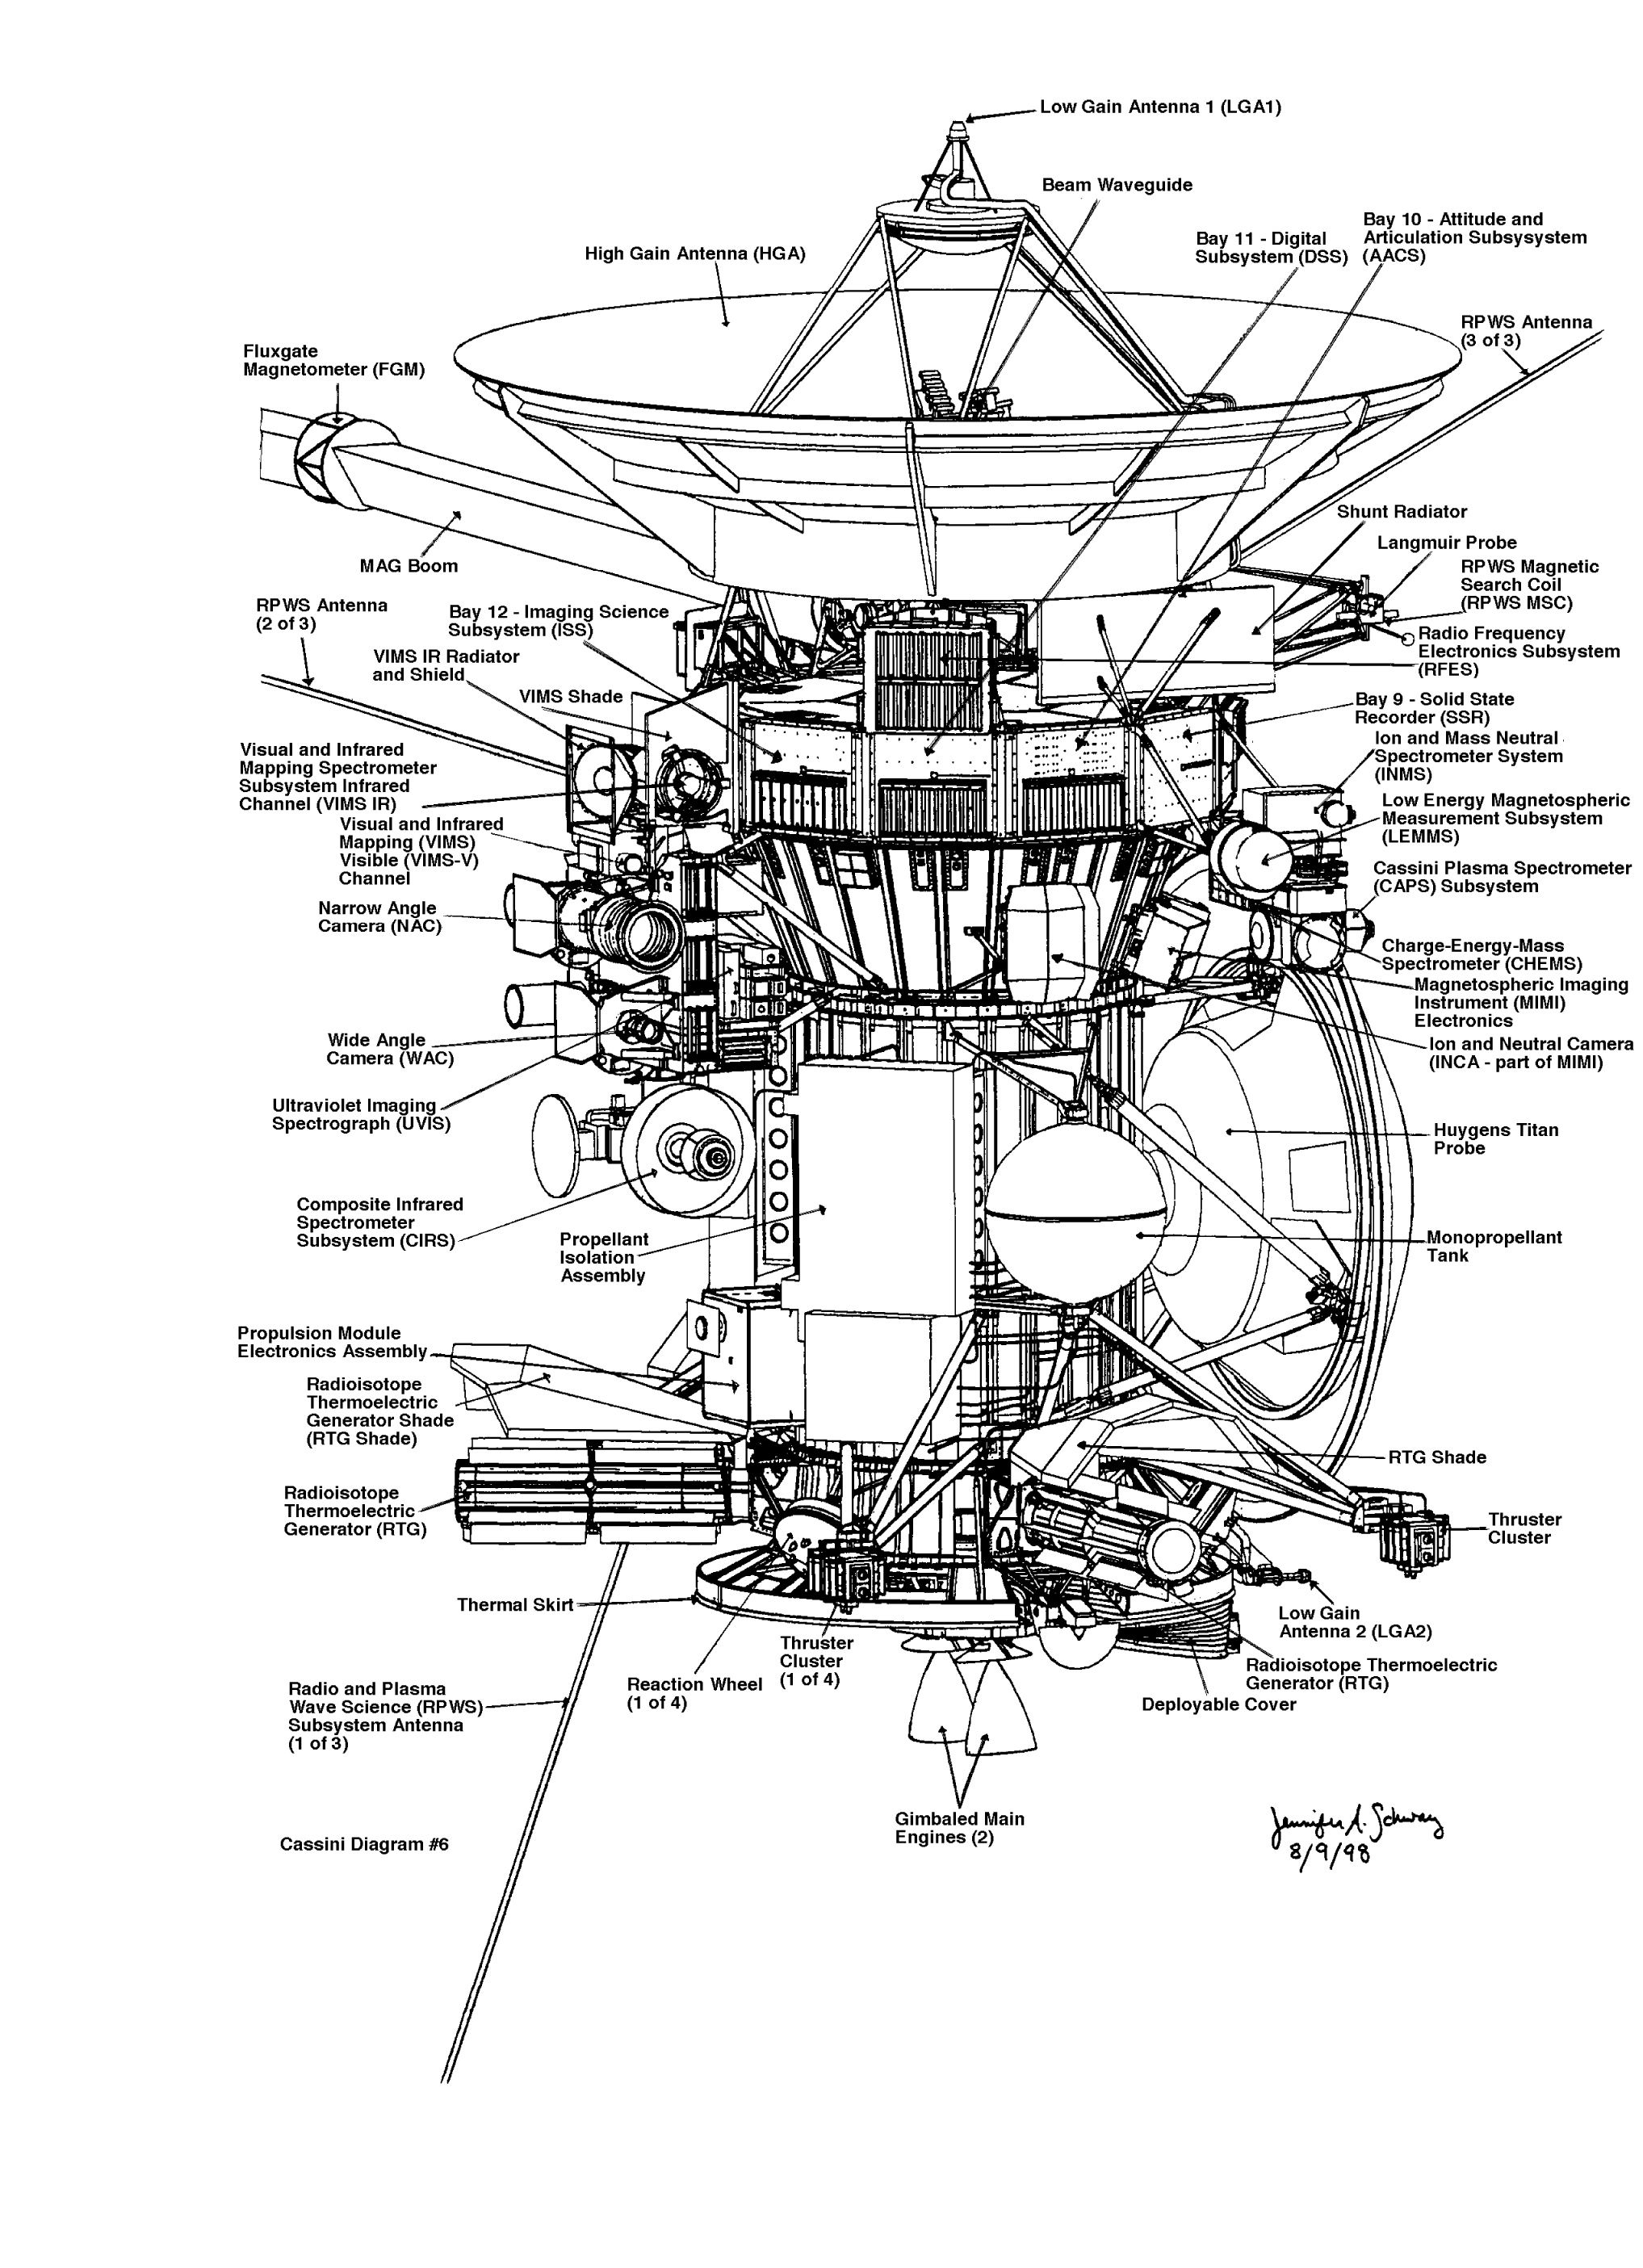 Cassini Diagram No 6